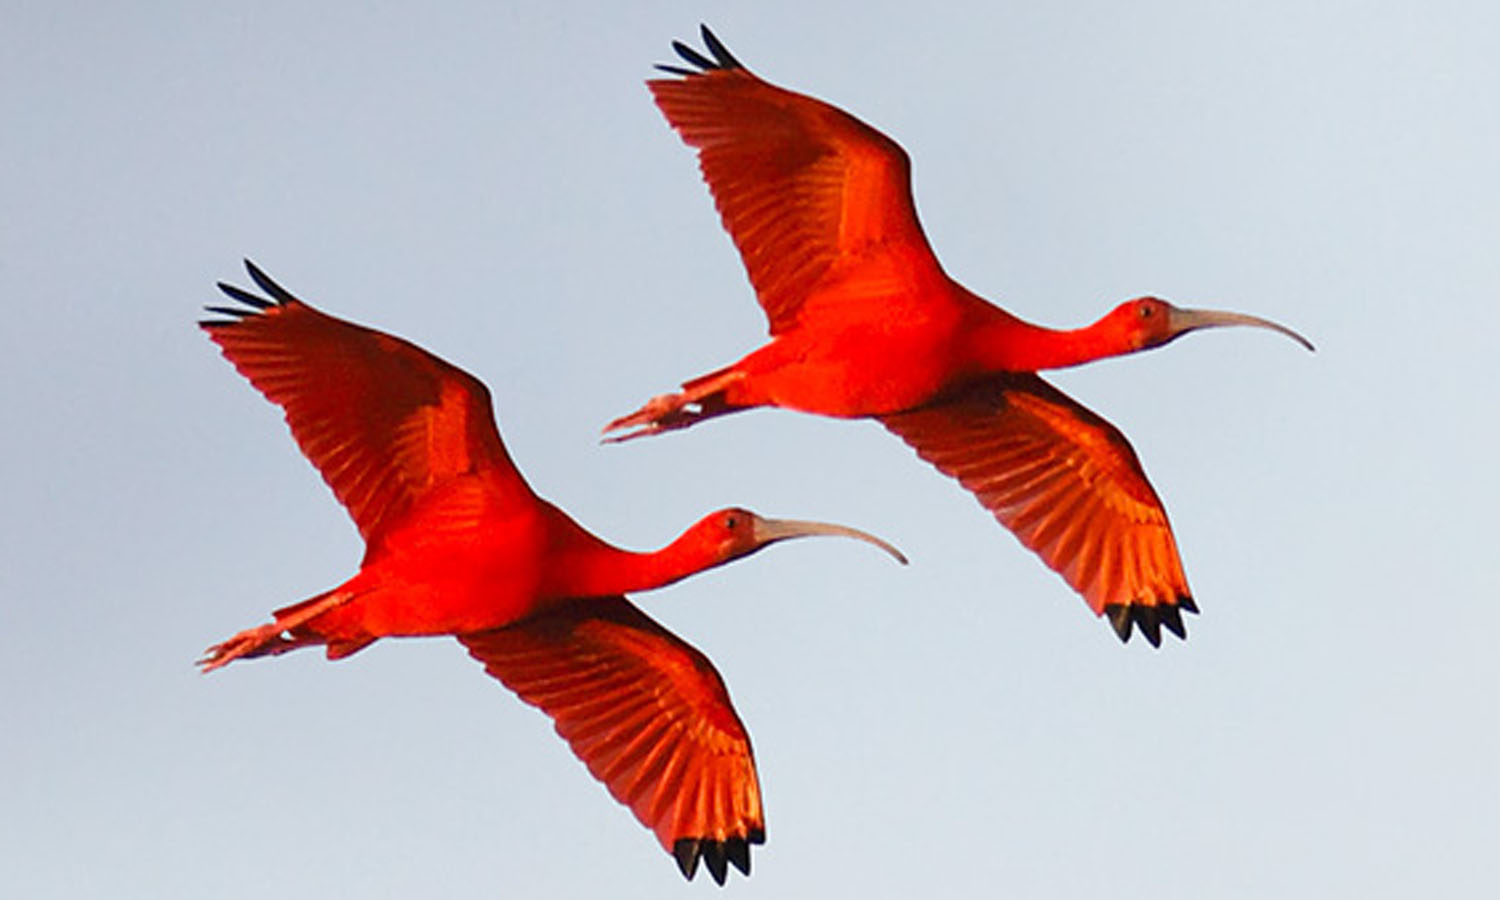 Centers blue star trinidad tobago the scarlet ibis one of the two national birds of trinidad tobago buycottarizona Choice Image